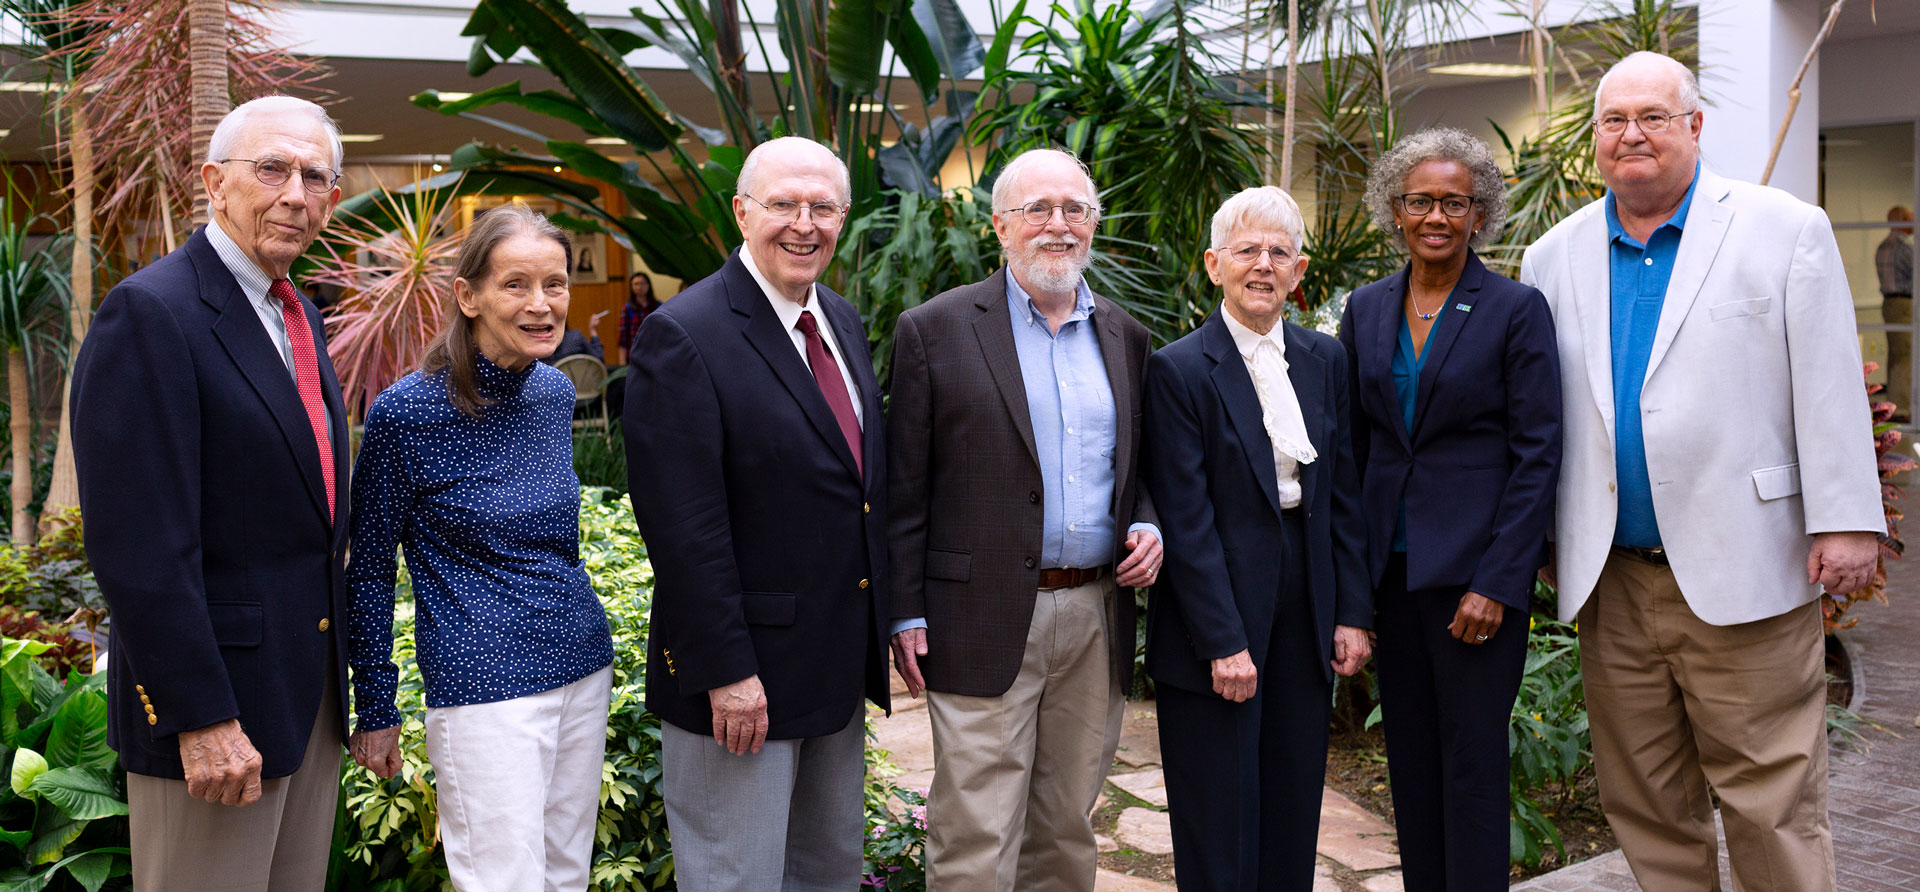 Charter faculty members reminisce in UHCL history panel